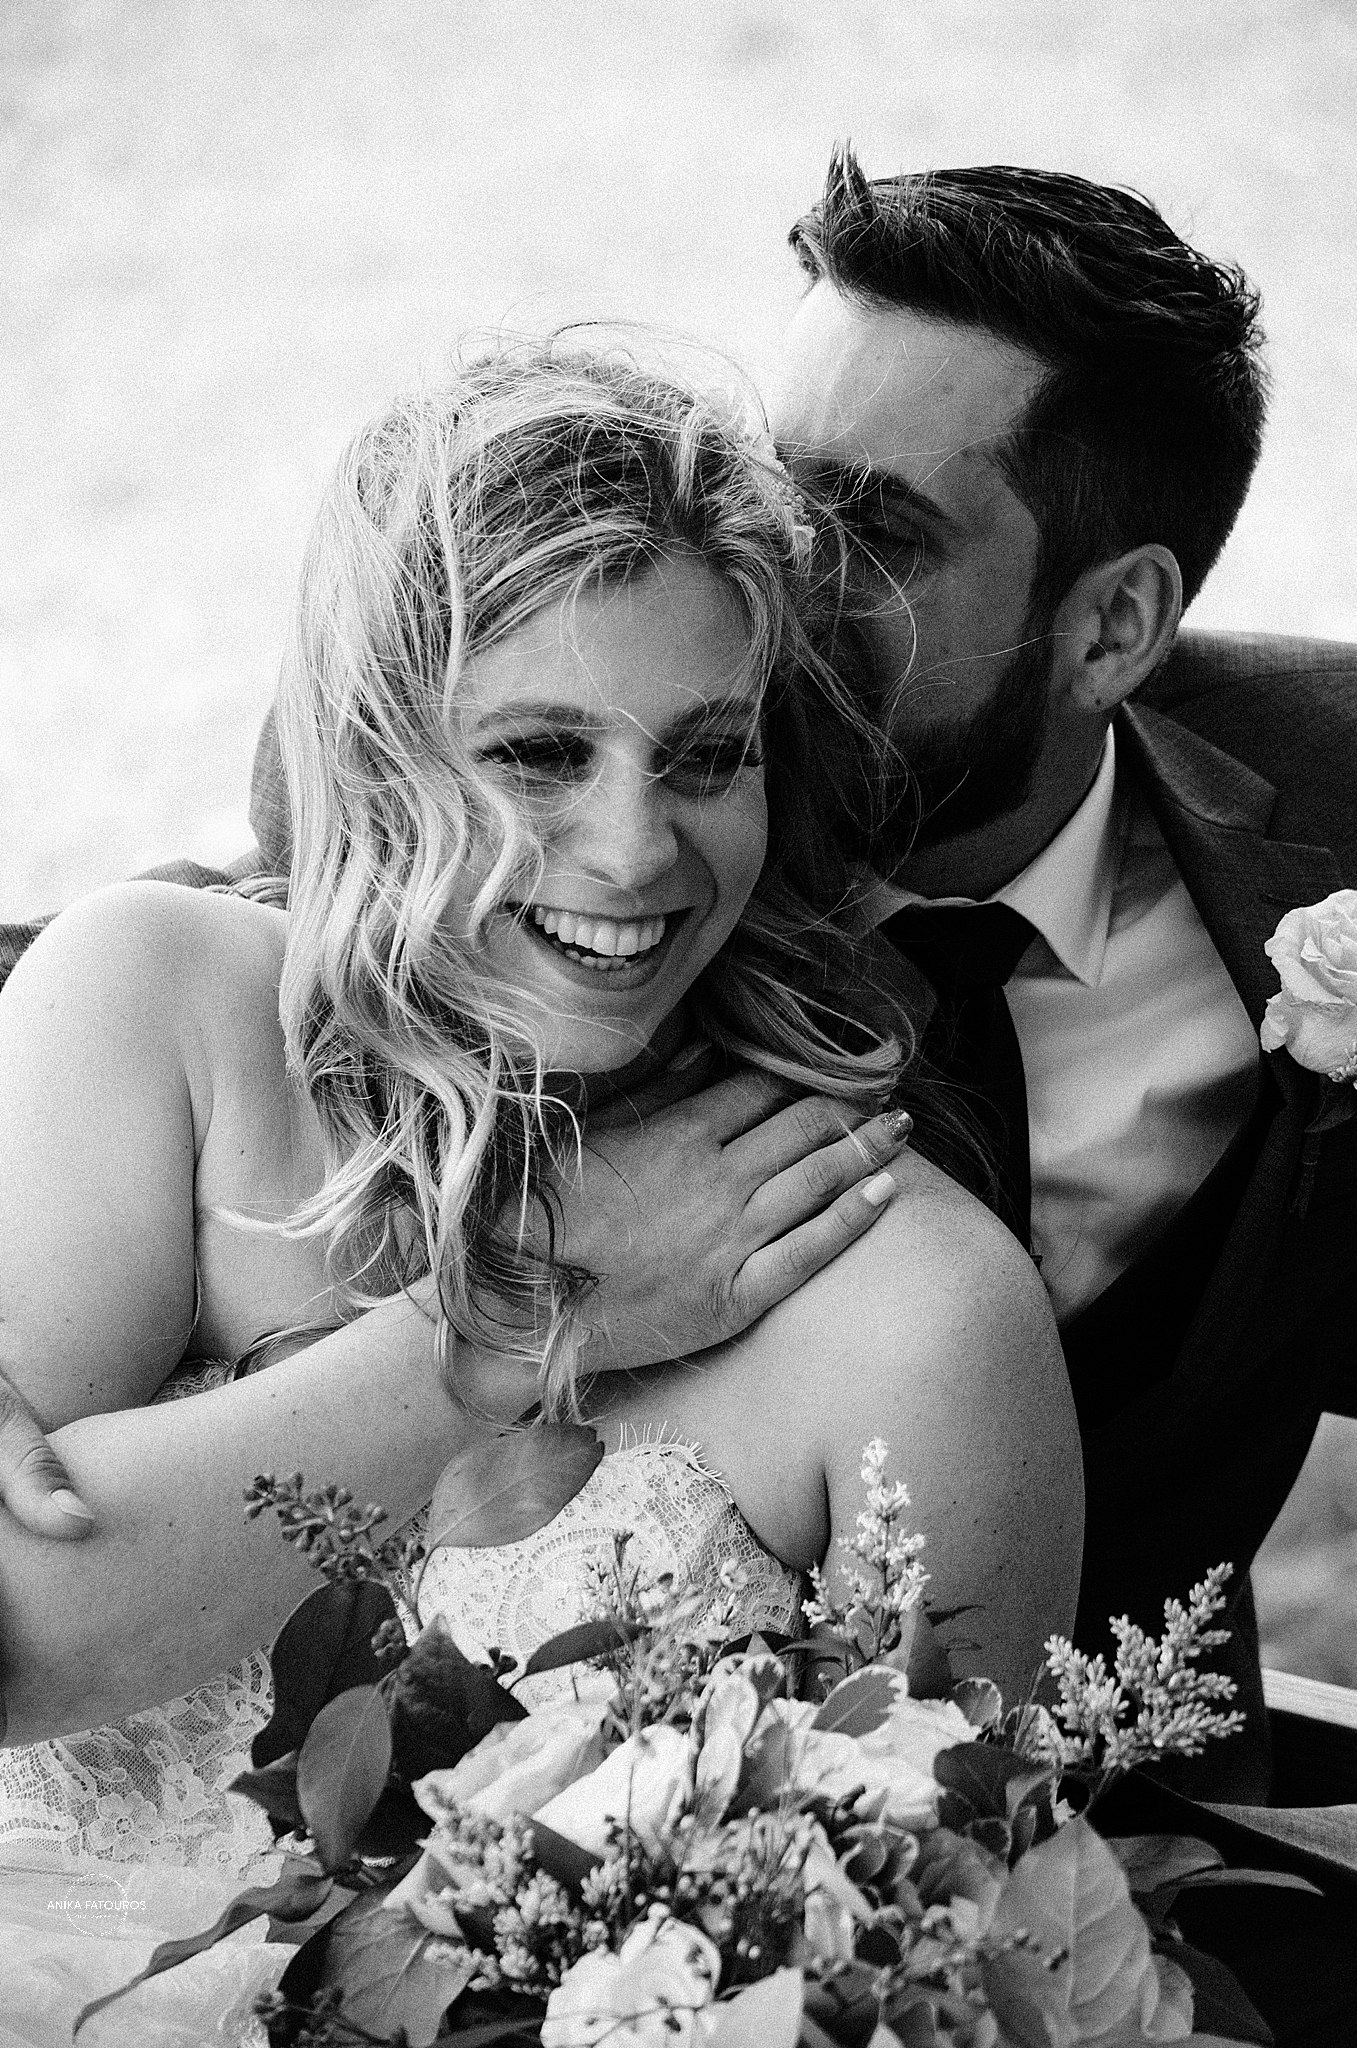 Anika Fatouros Photography - Laughter, Tears, and Joy are just some of the emotions you will express on your weddings day. Don't miss a moment, let us capture it all and tell story of your wedding day.